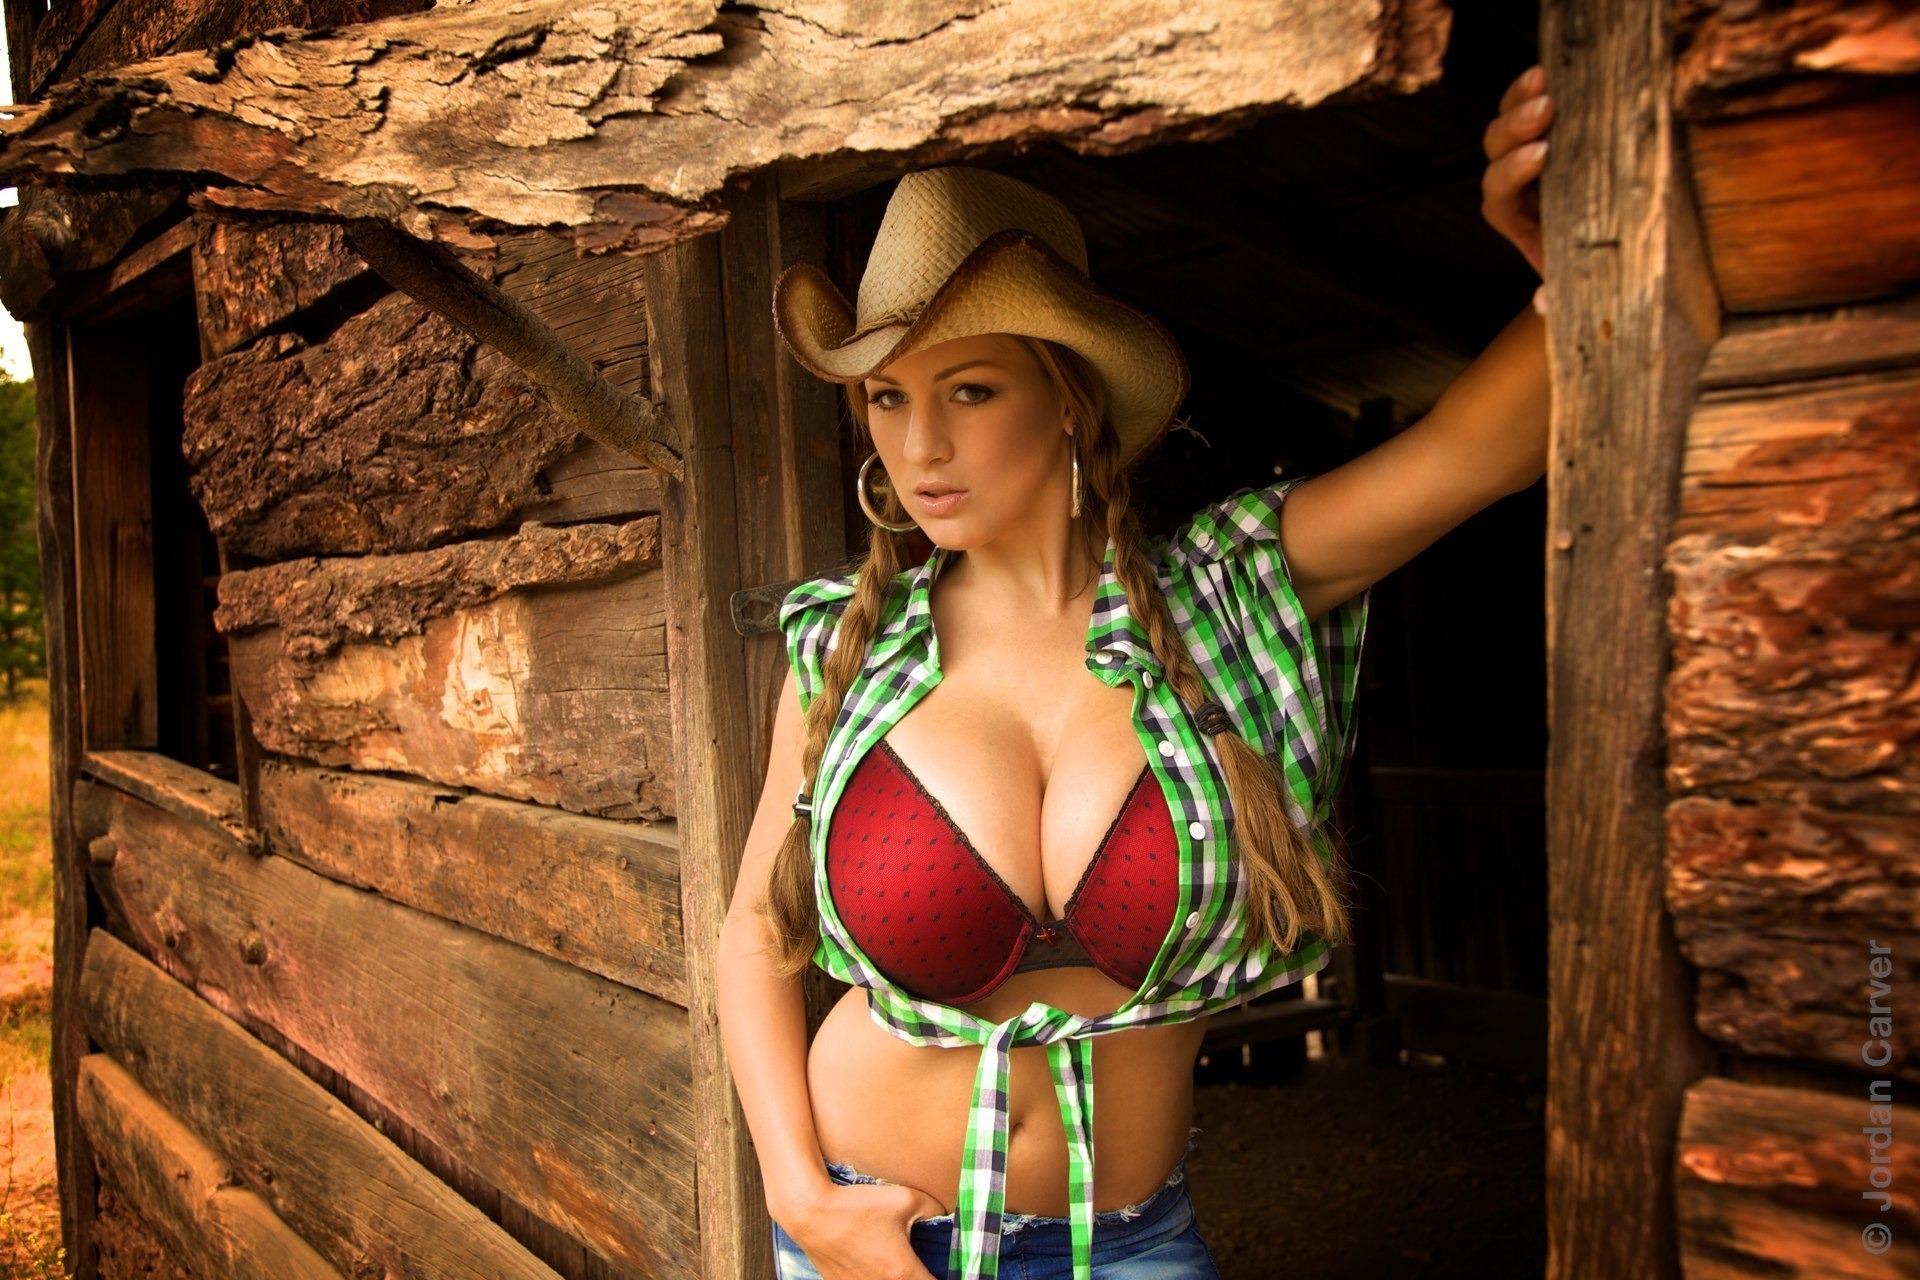 Nude hot blonde brunette cowgirl